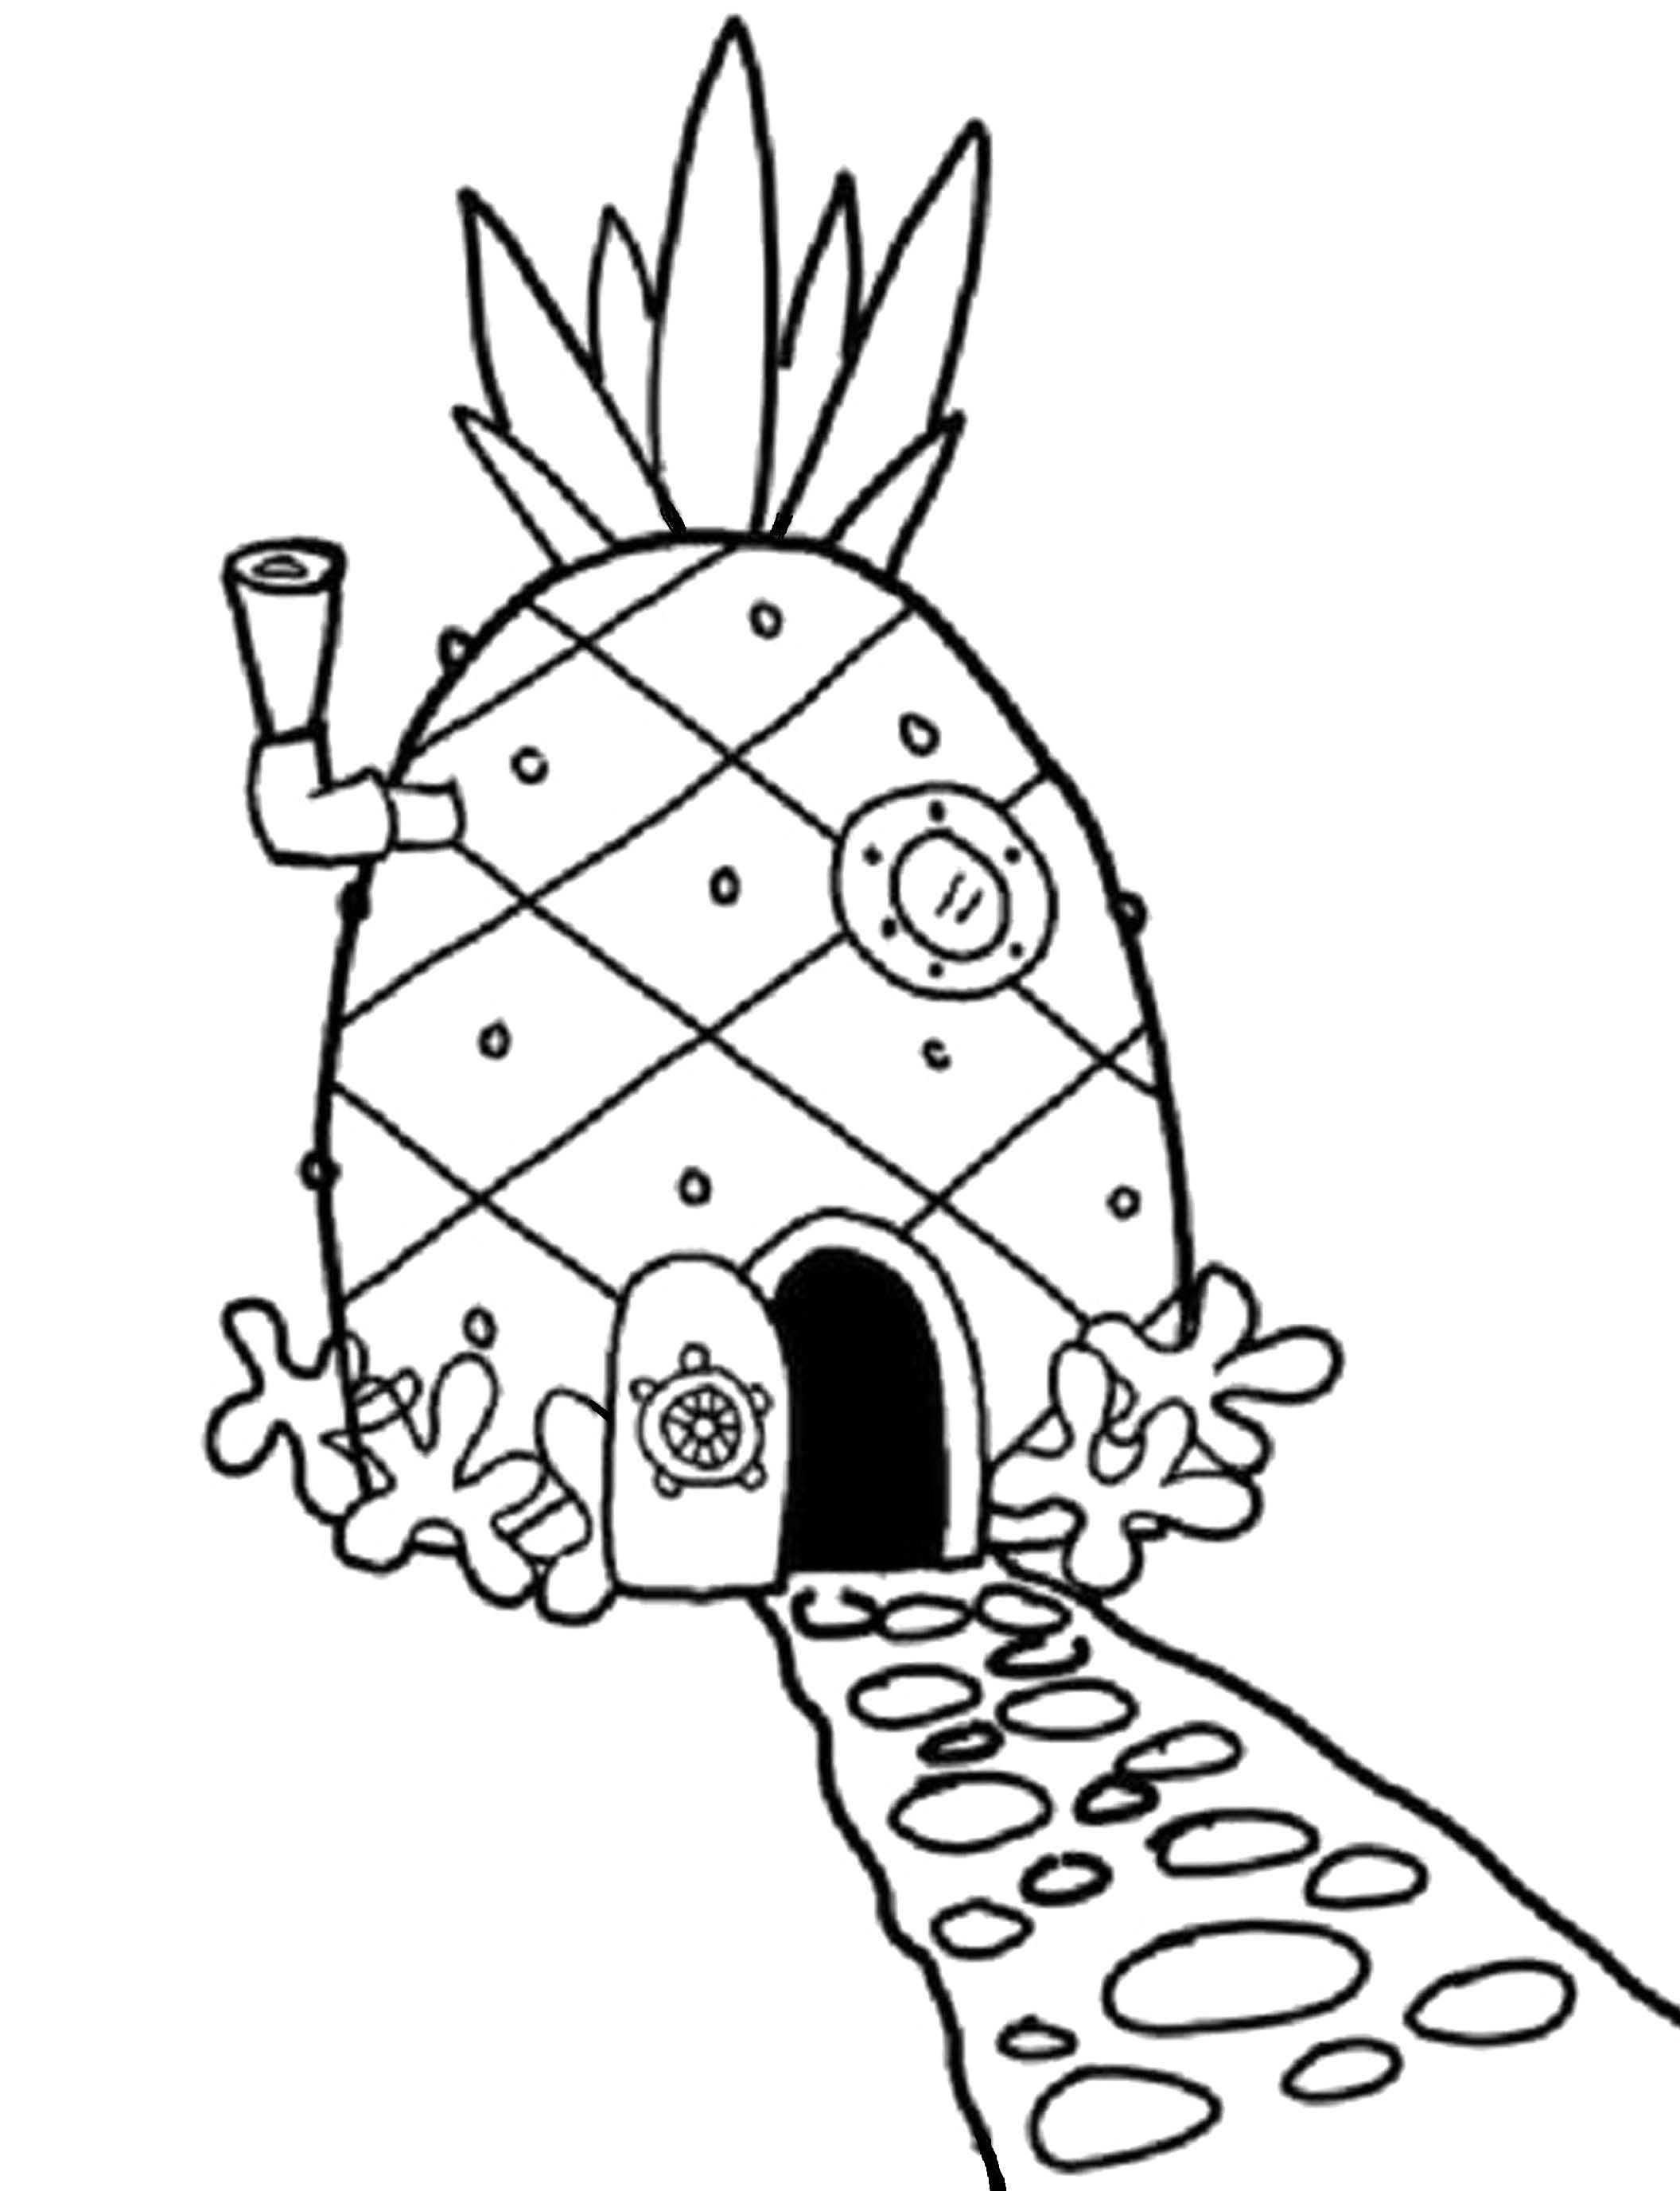 Spongebob'S House Coloring Pages